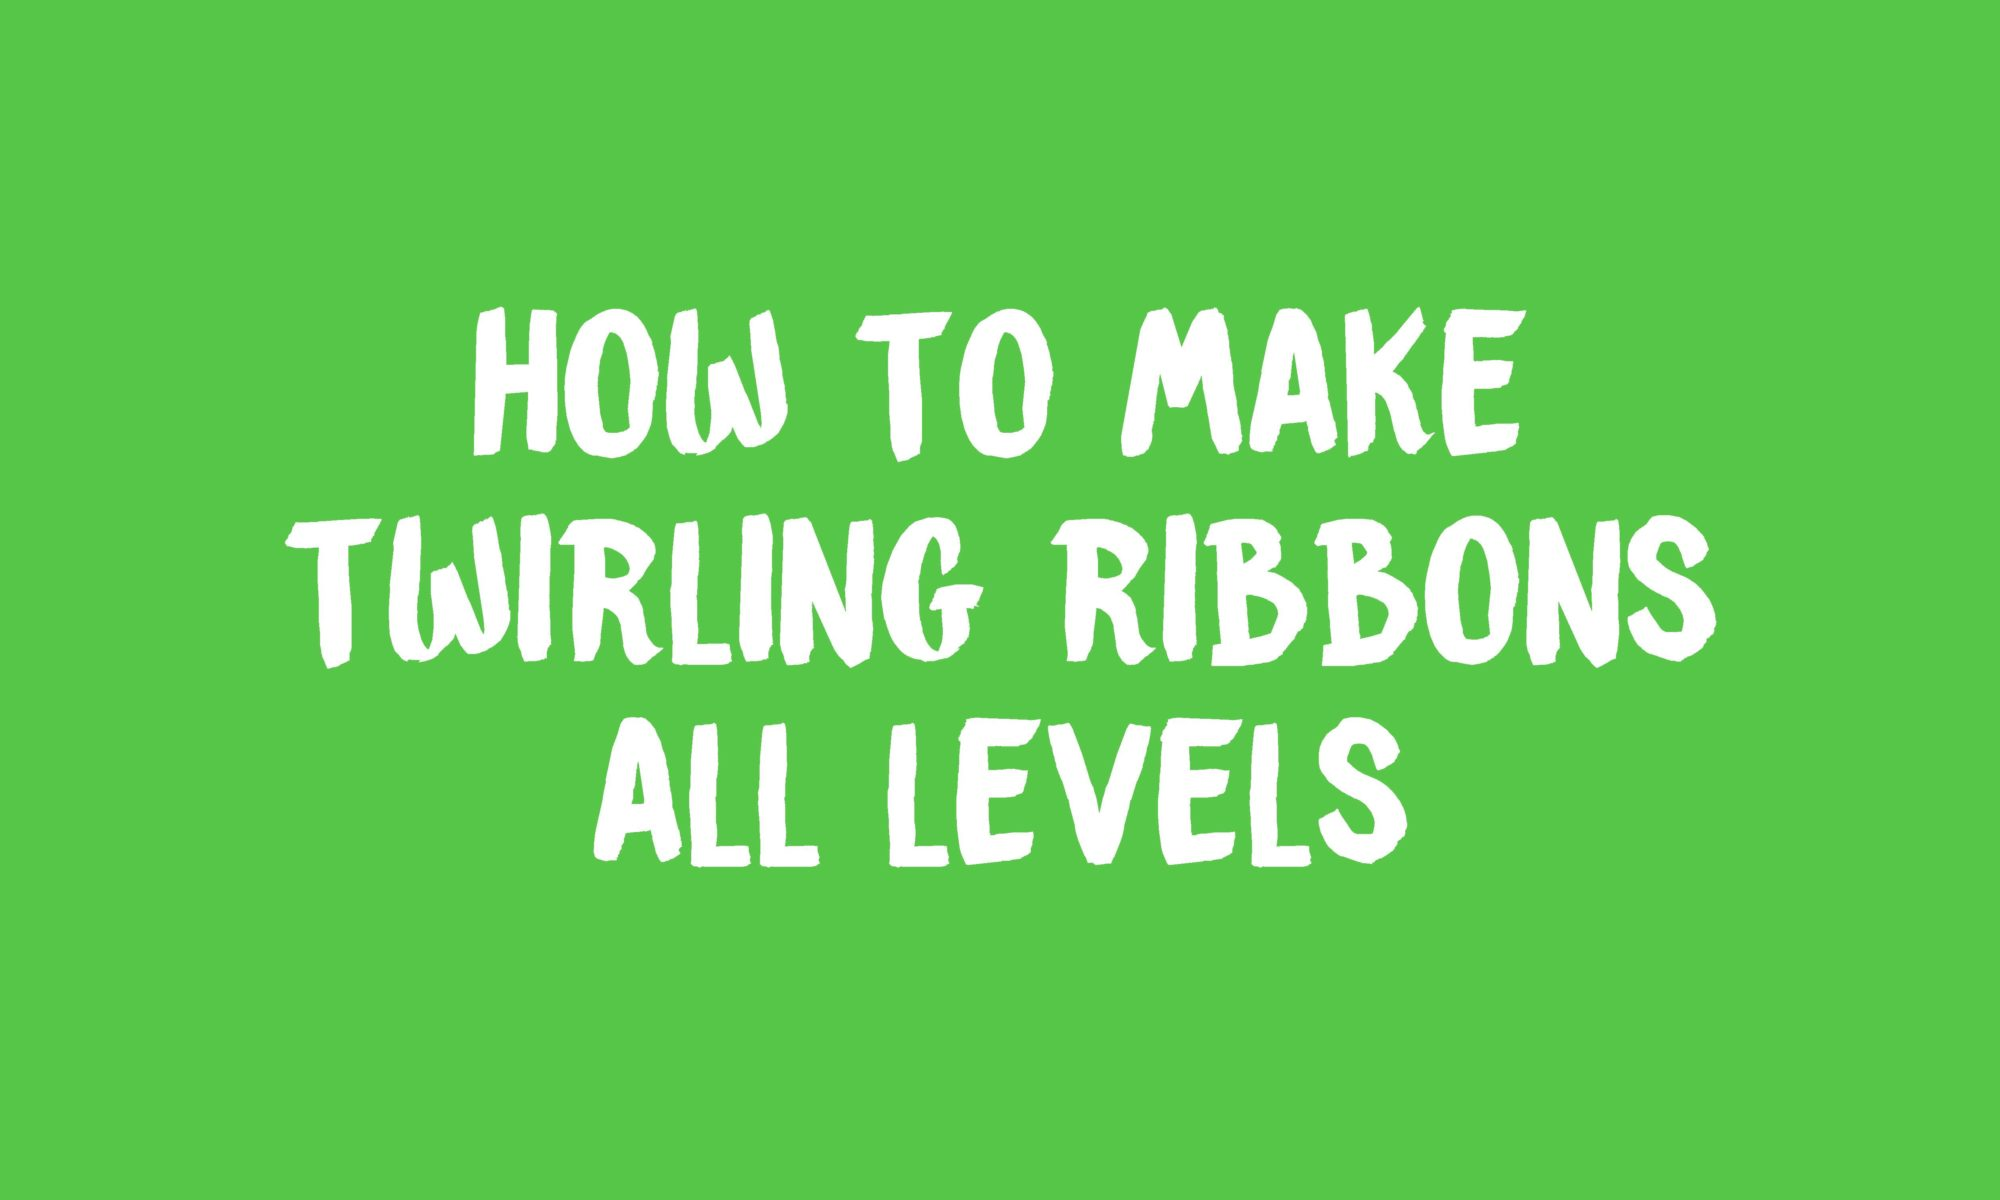 How To Make Twirling Ribbons Banner